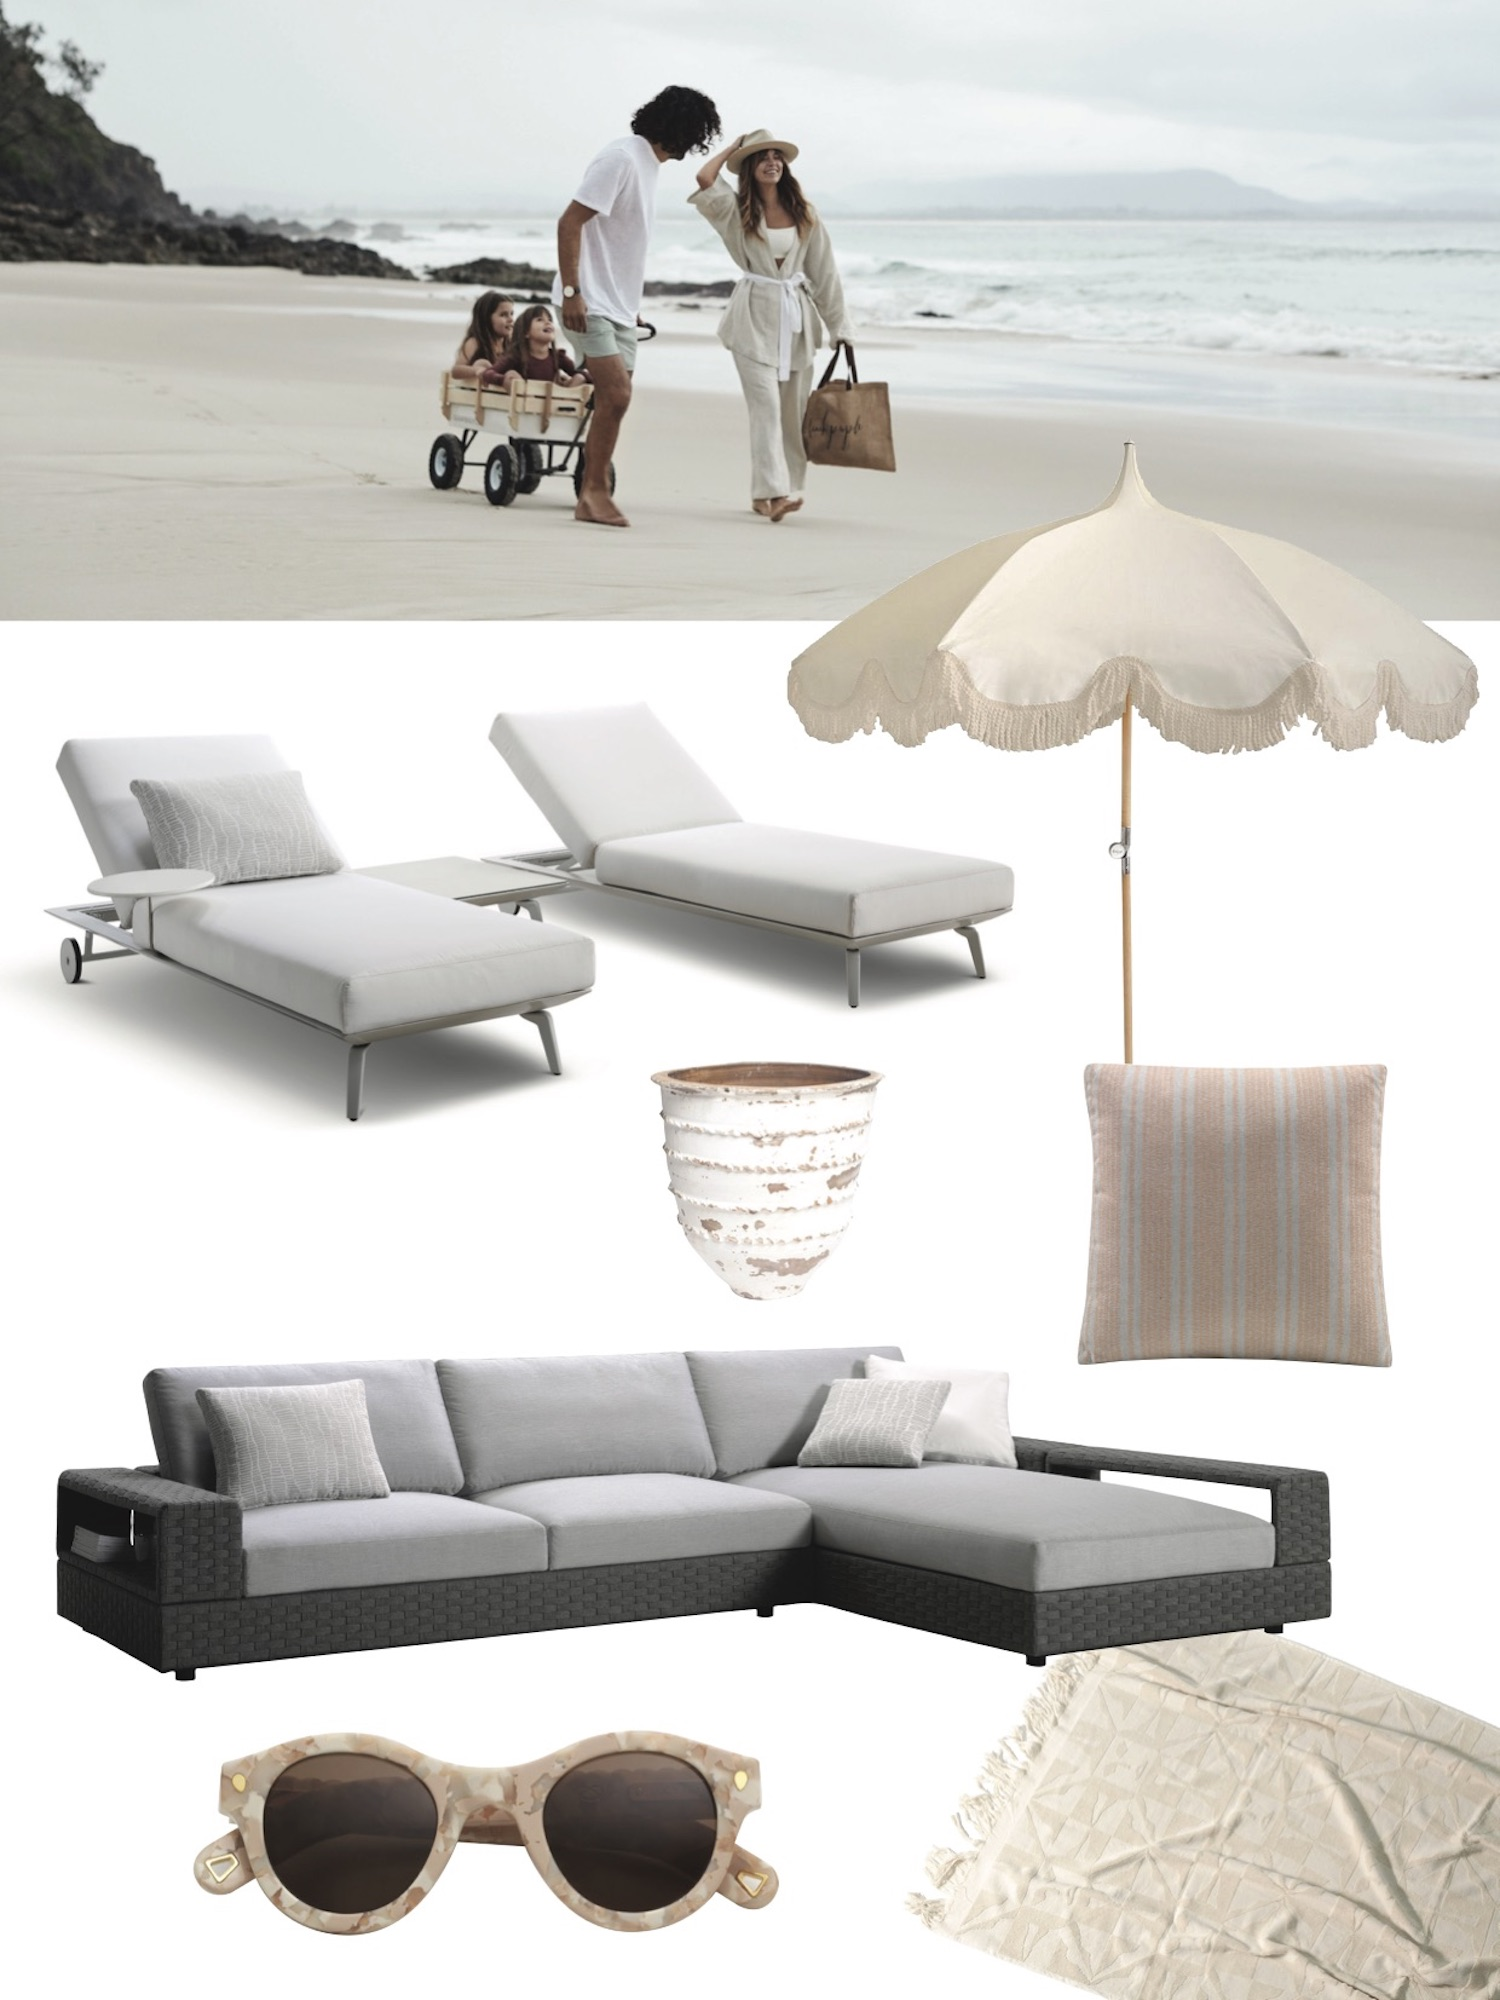 Est Living King Outdoor Collection Beach dragged